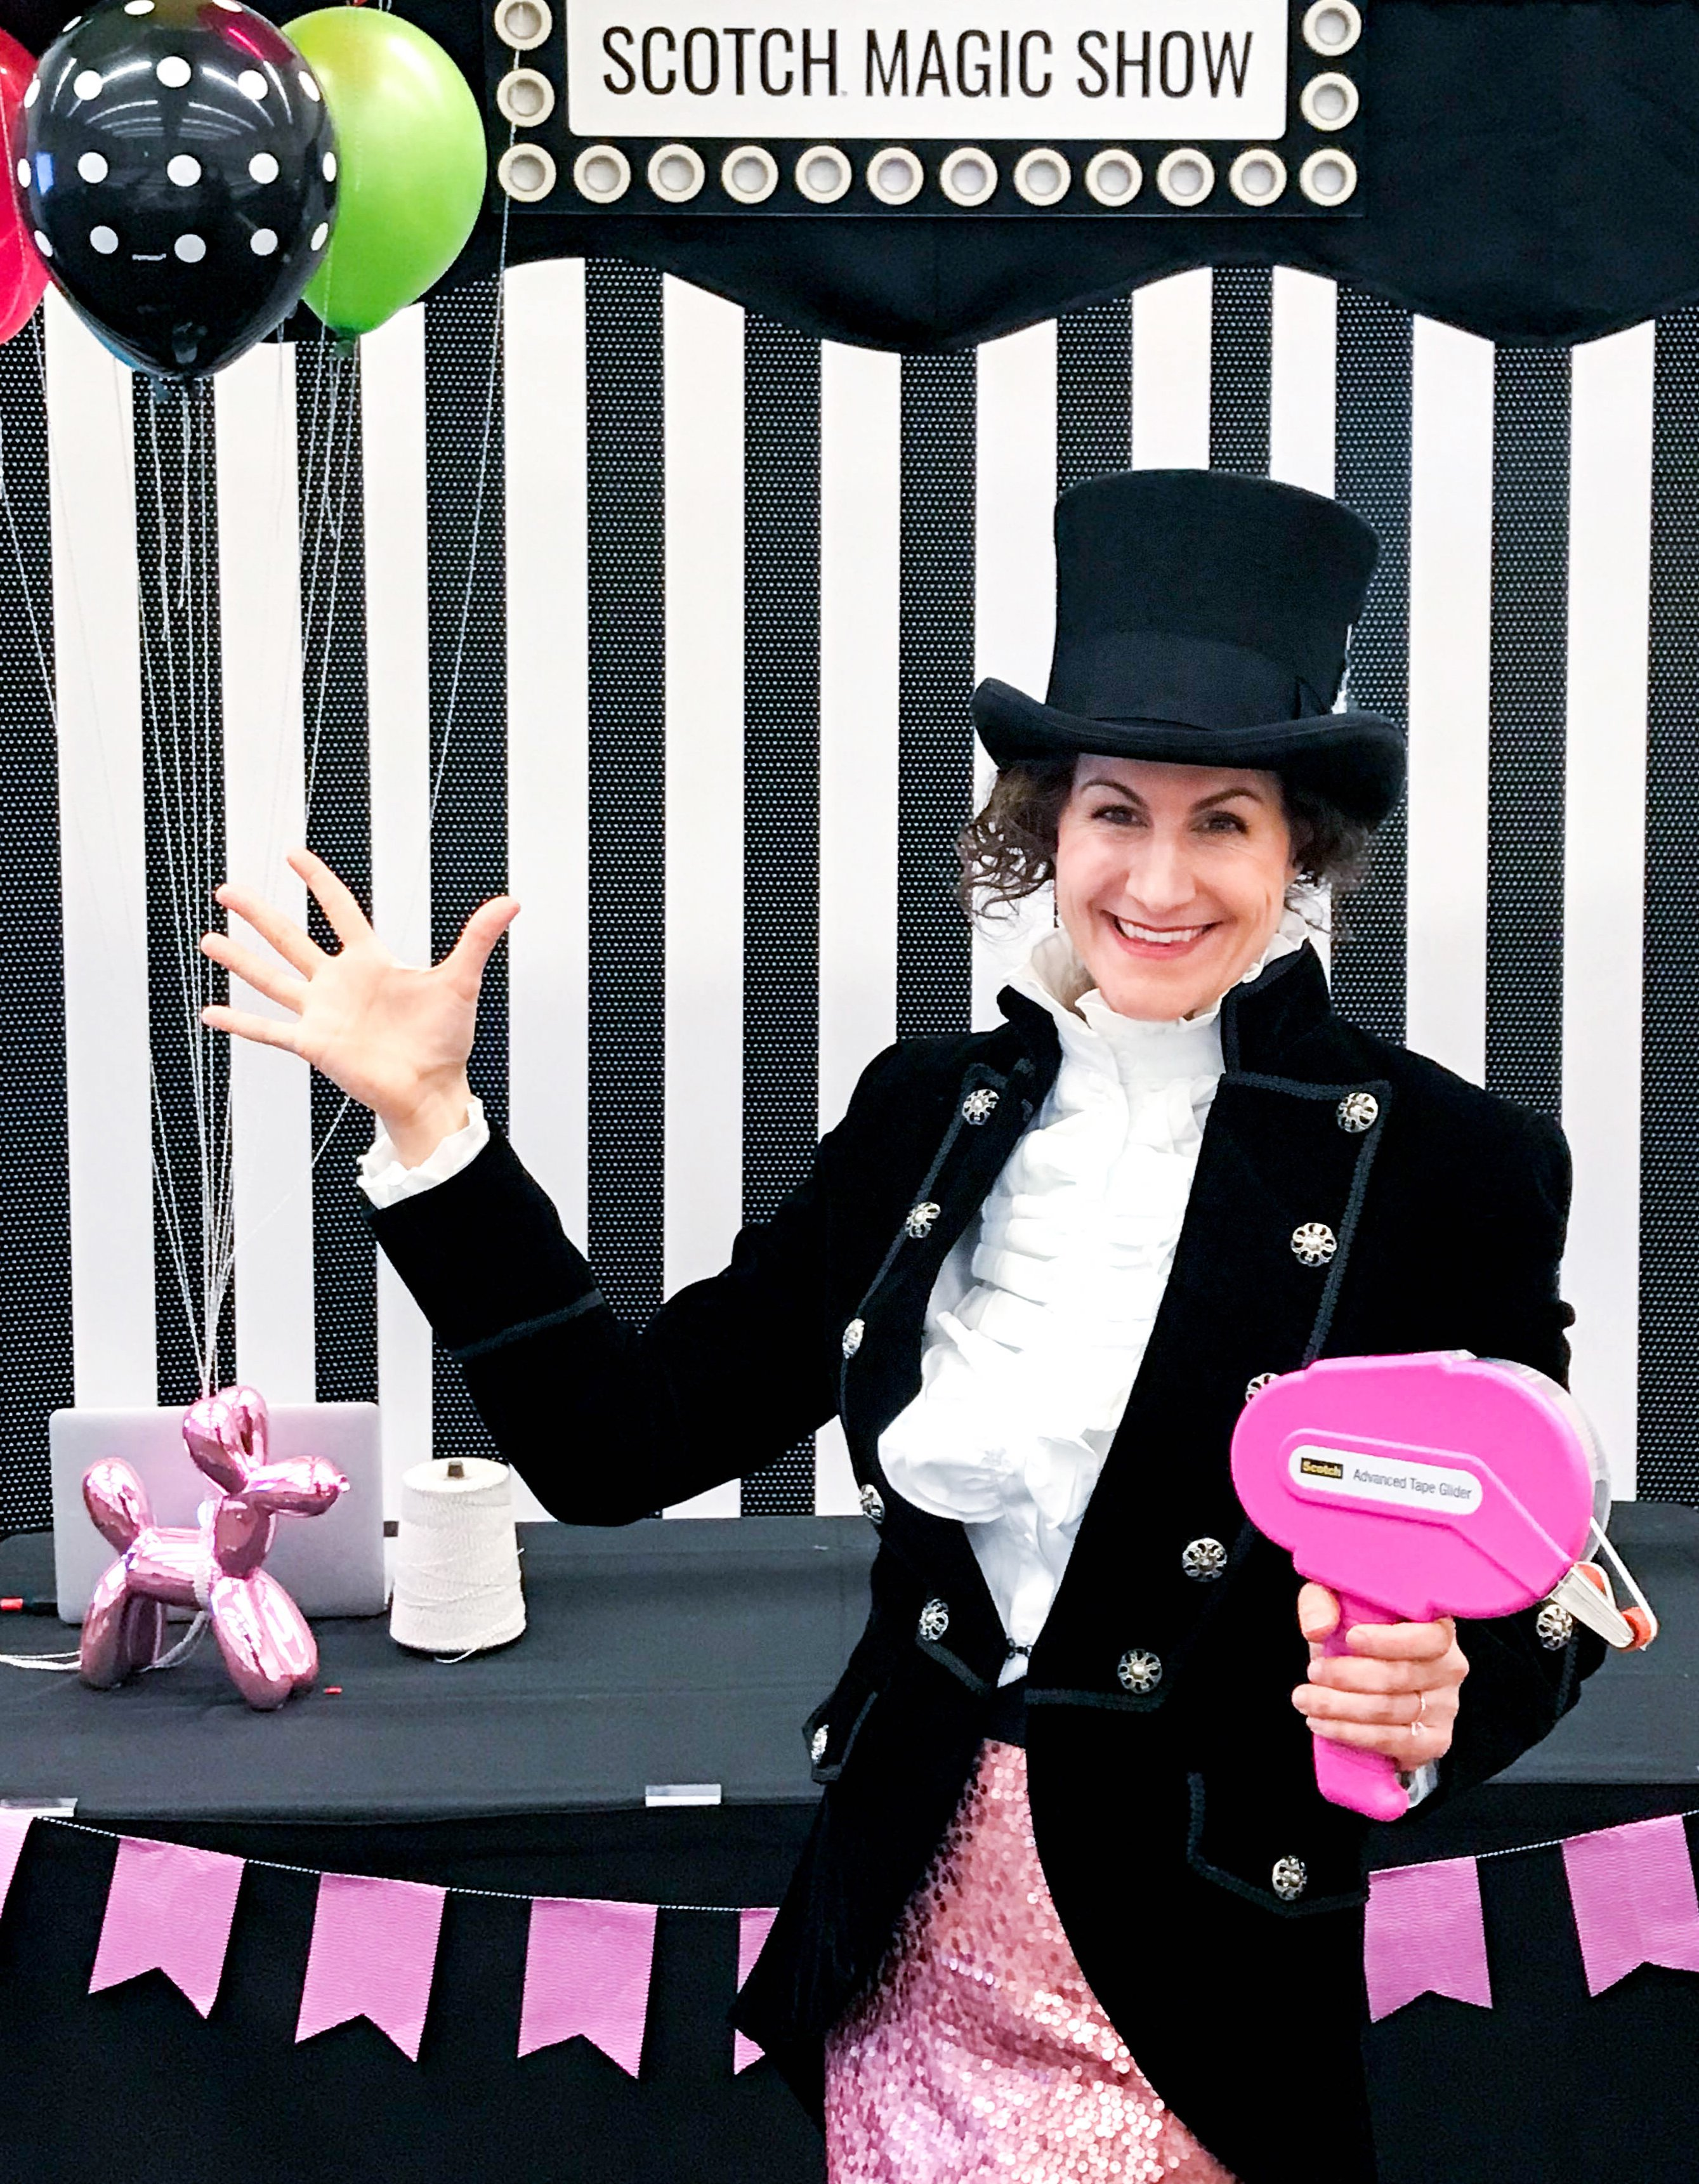 Greatest Showman Party Ideas from my Scotch Magic Show at Creativation 2018 via @PagingSupermom